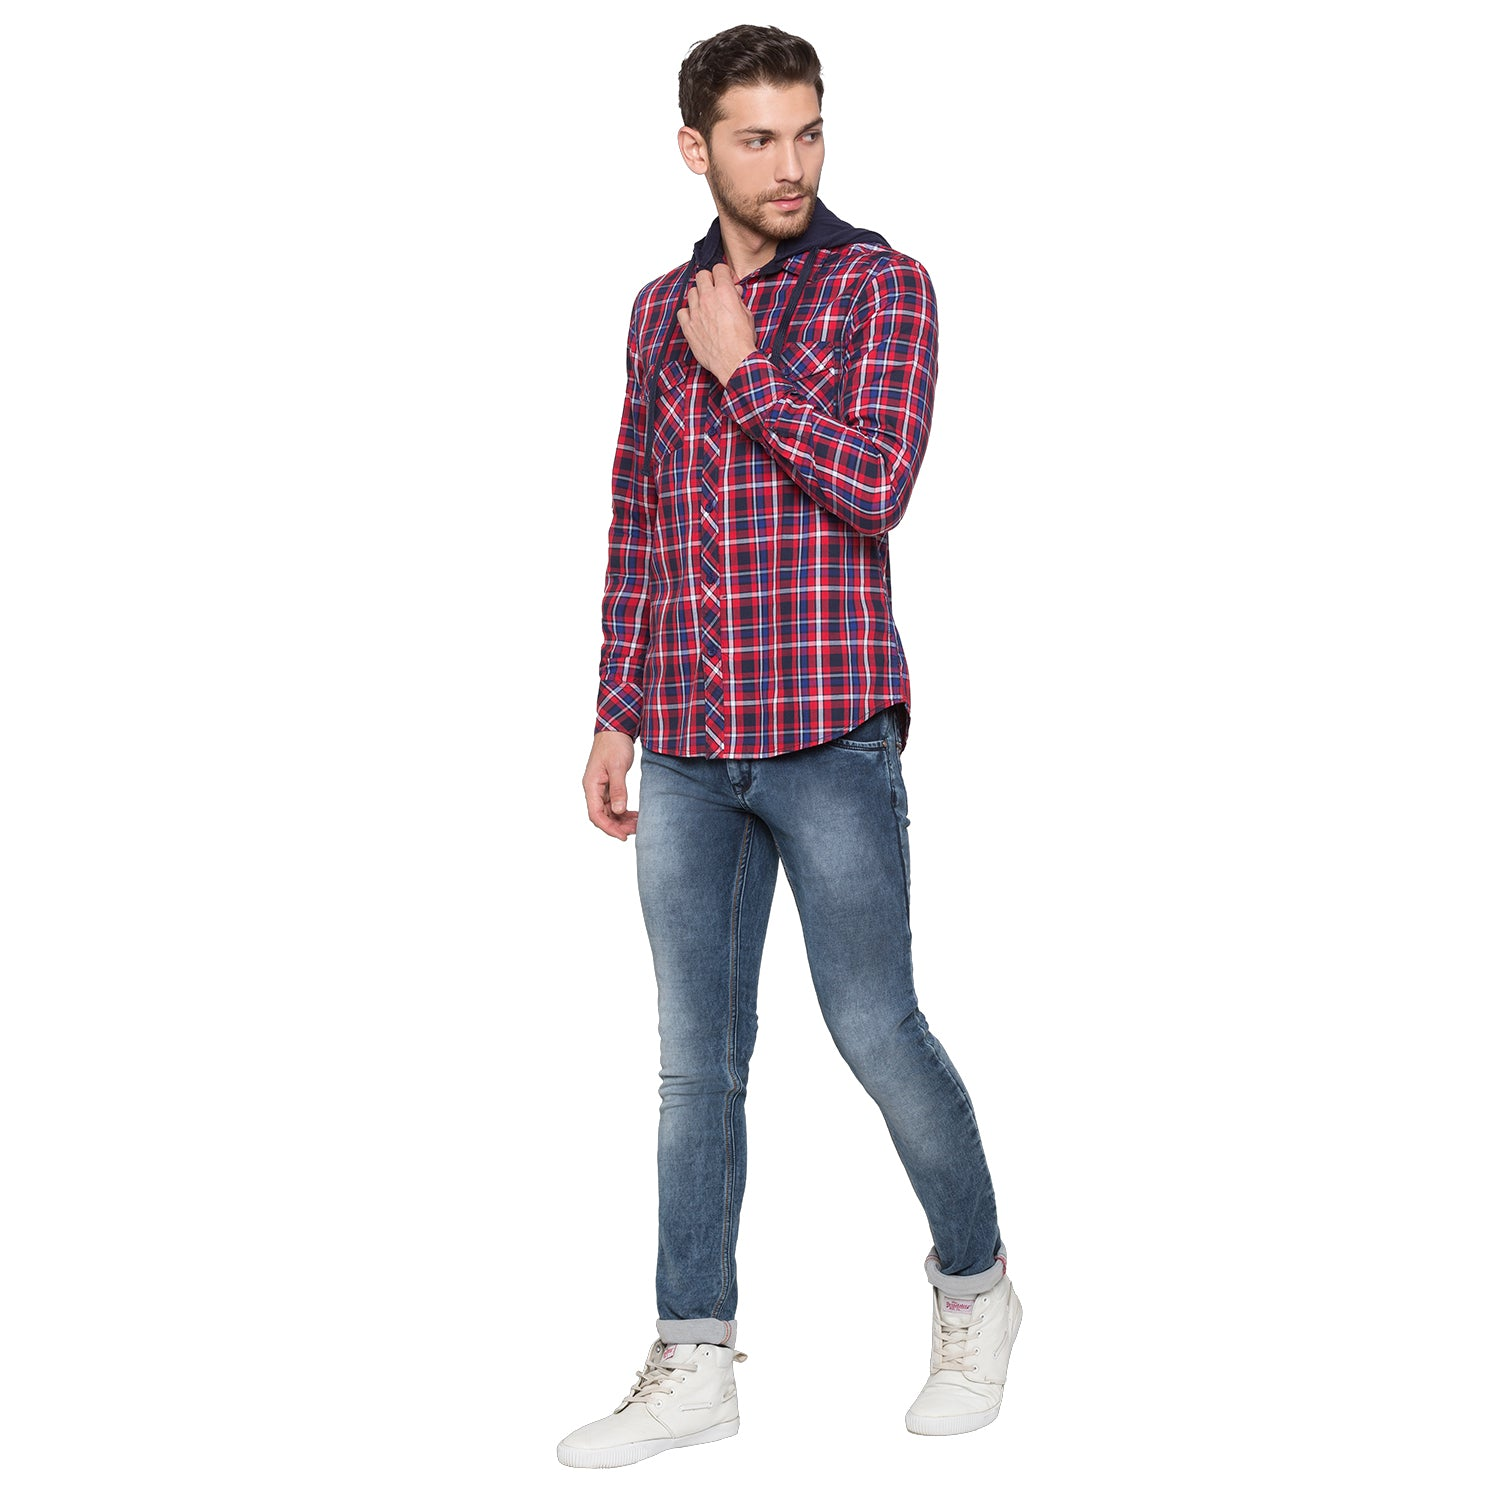 Globus Red & Navy Blue Checked Shirt-4